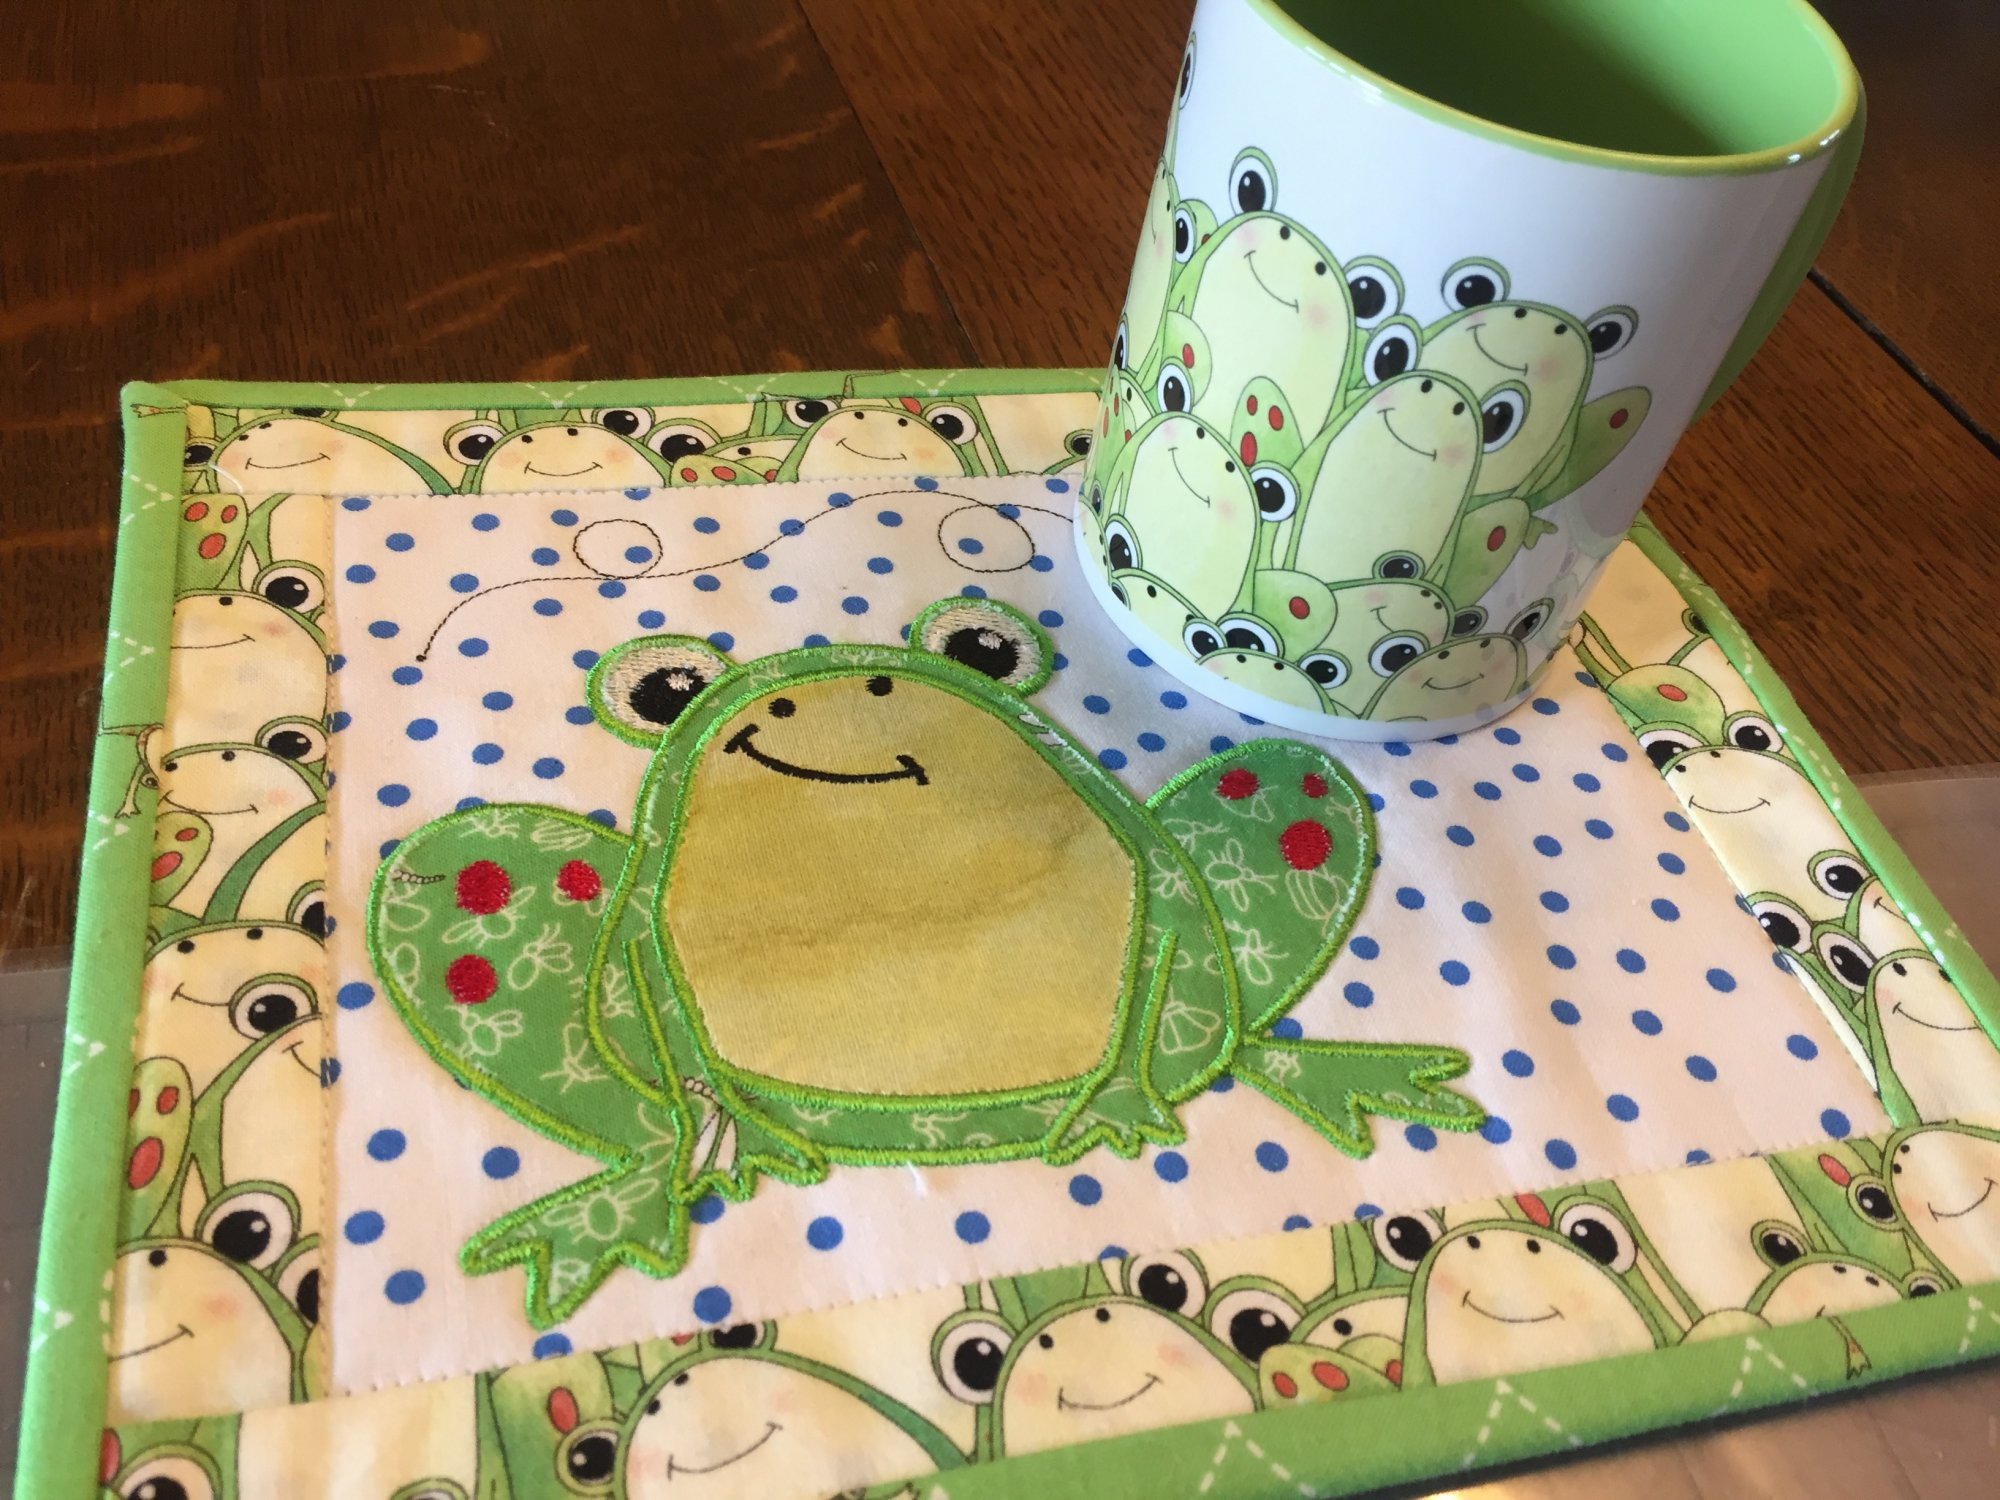 Tasty Tidbits Frog Mug Rug Pattern with matching Coffee Mug